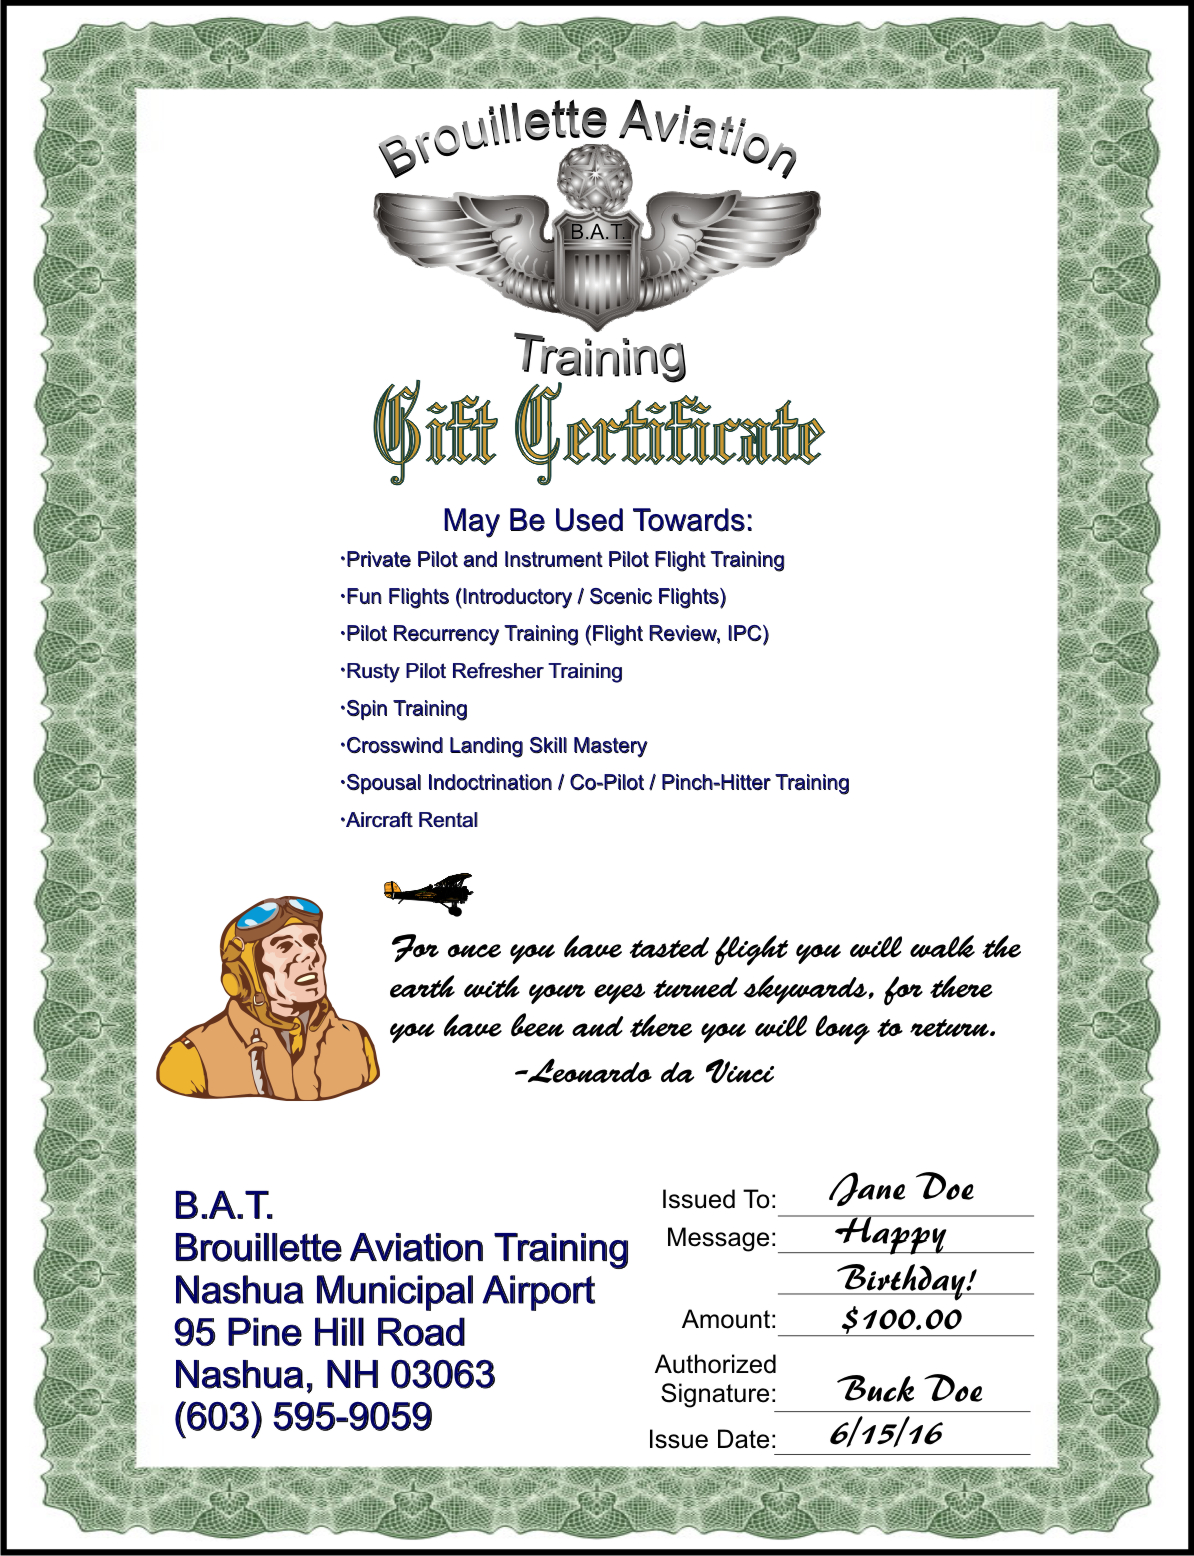 Training certificate sample job sheet format excel gift certificates bat giftcertfullpagesample gift certshtm aiddatafo Images